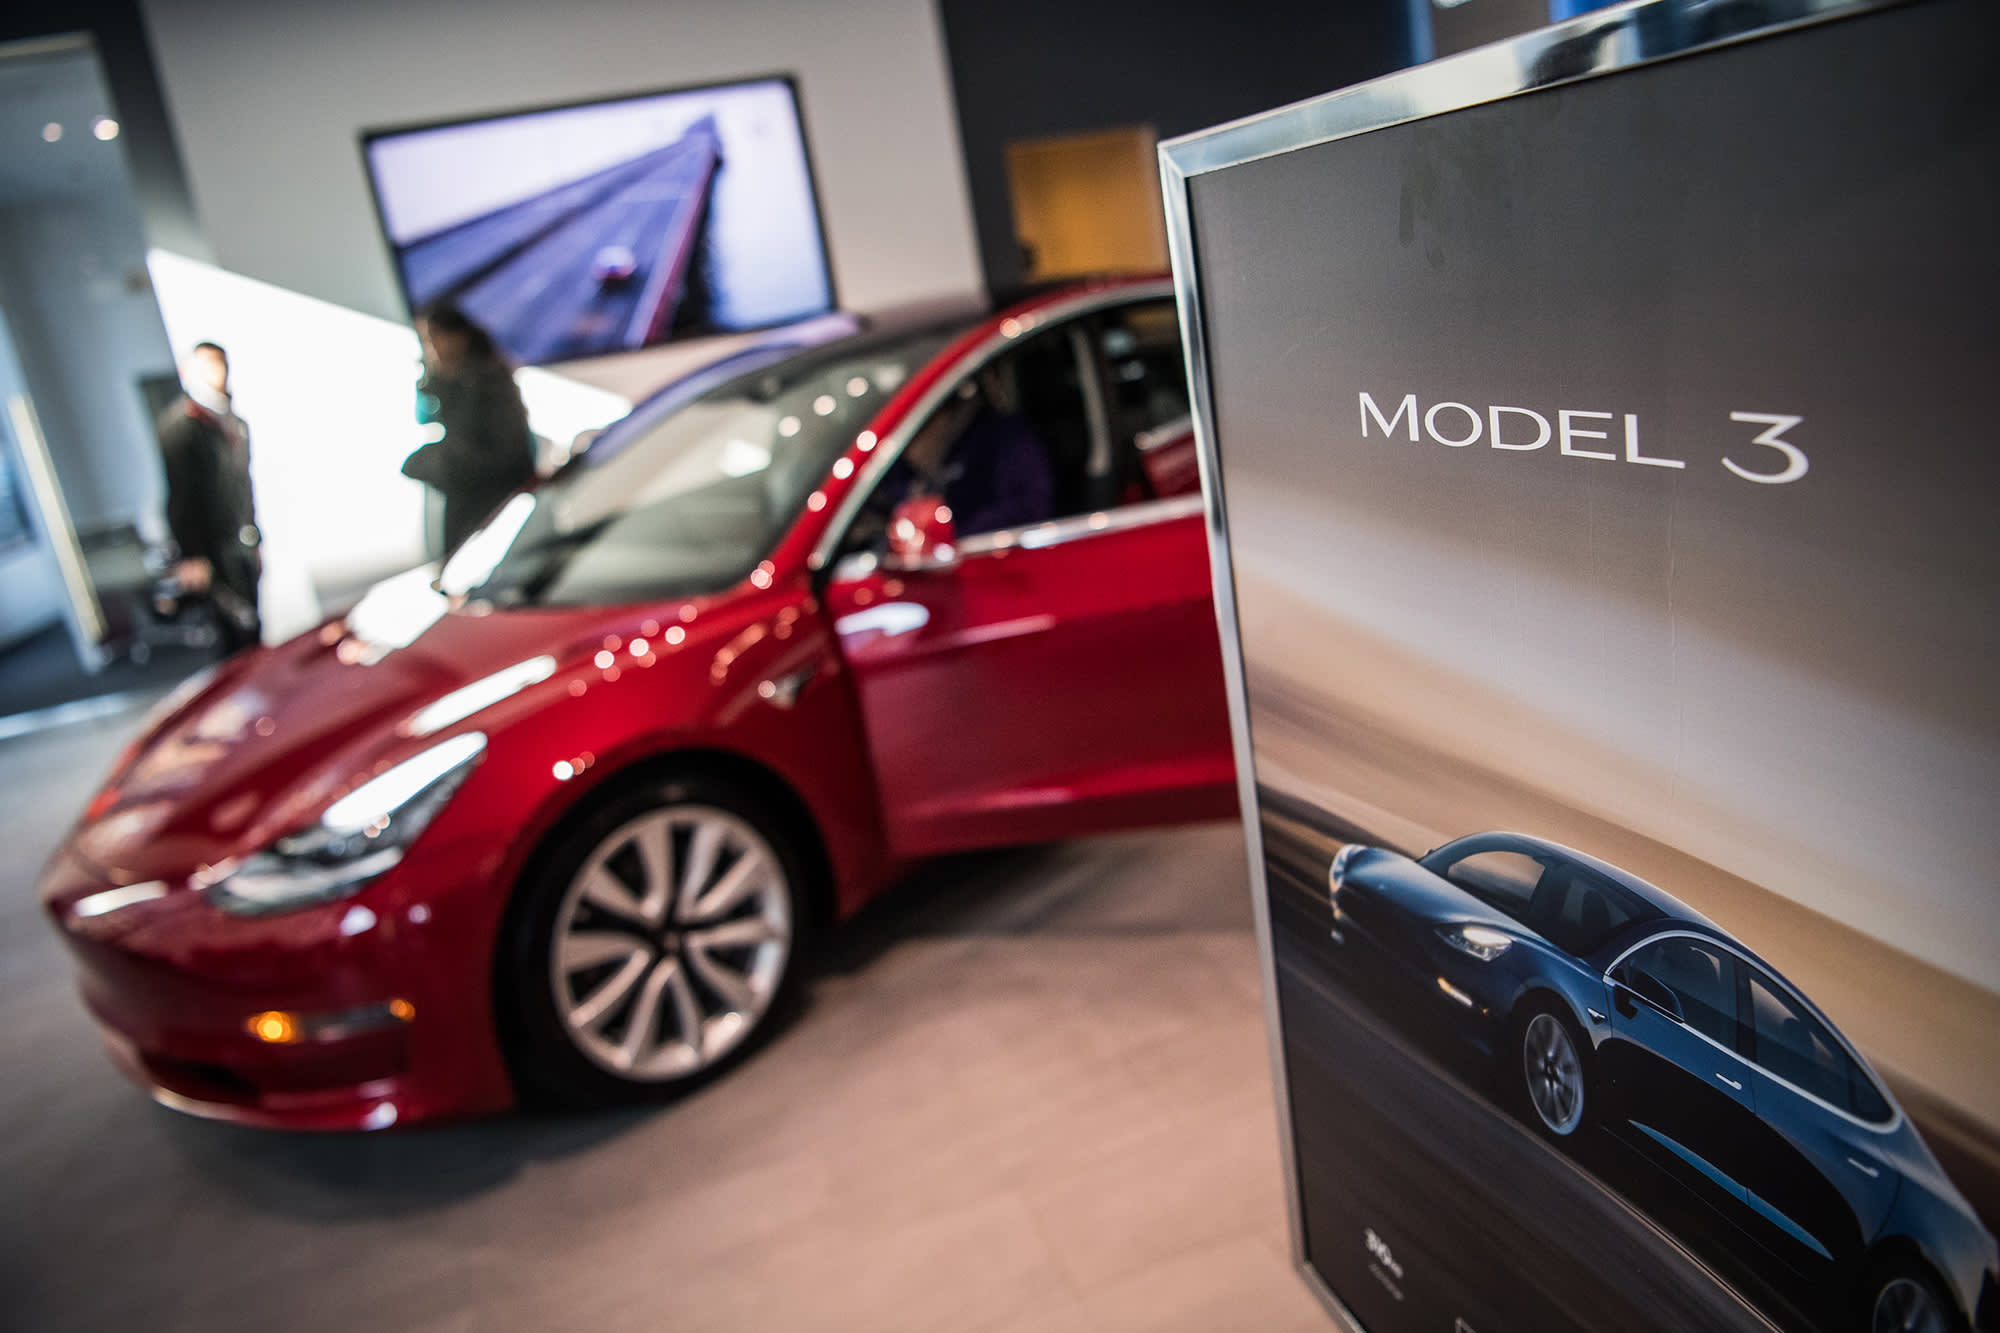 UBS repeats: Tesla will lose money on $35,000 Model 3